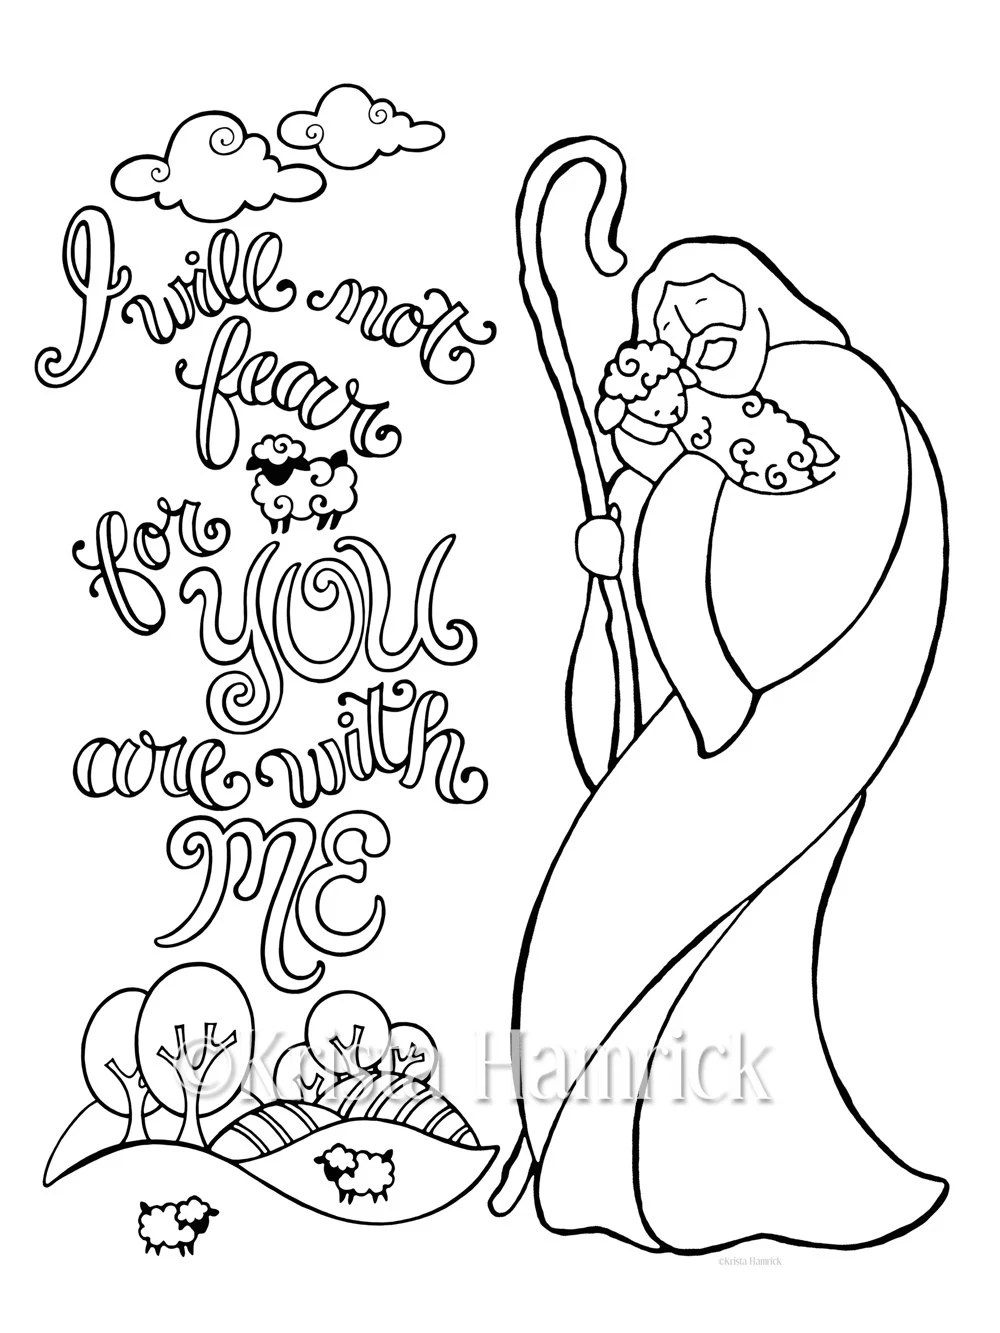 Good Shepherd coloring page in two sizes: 8.5X11 and Bible